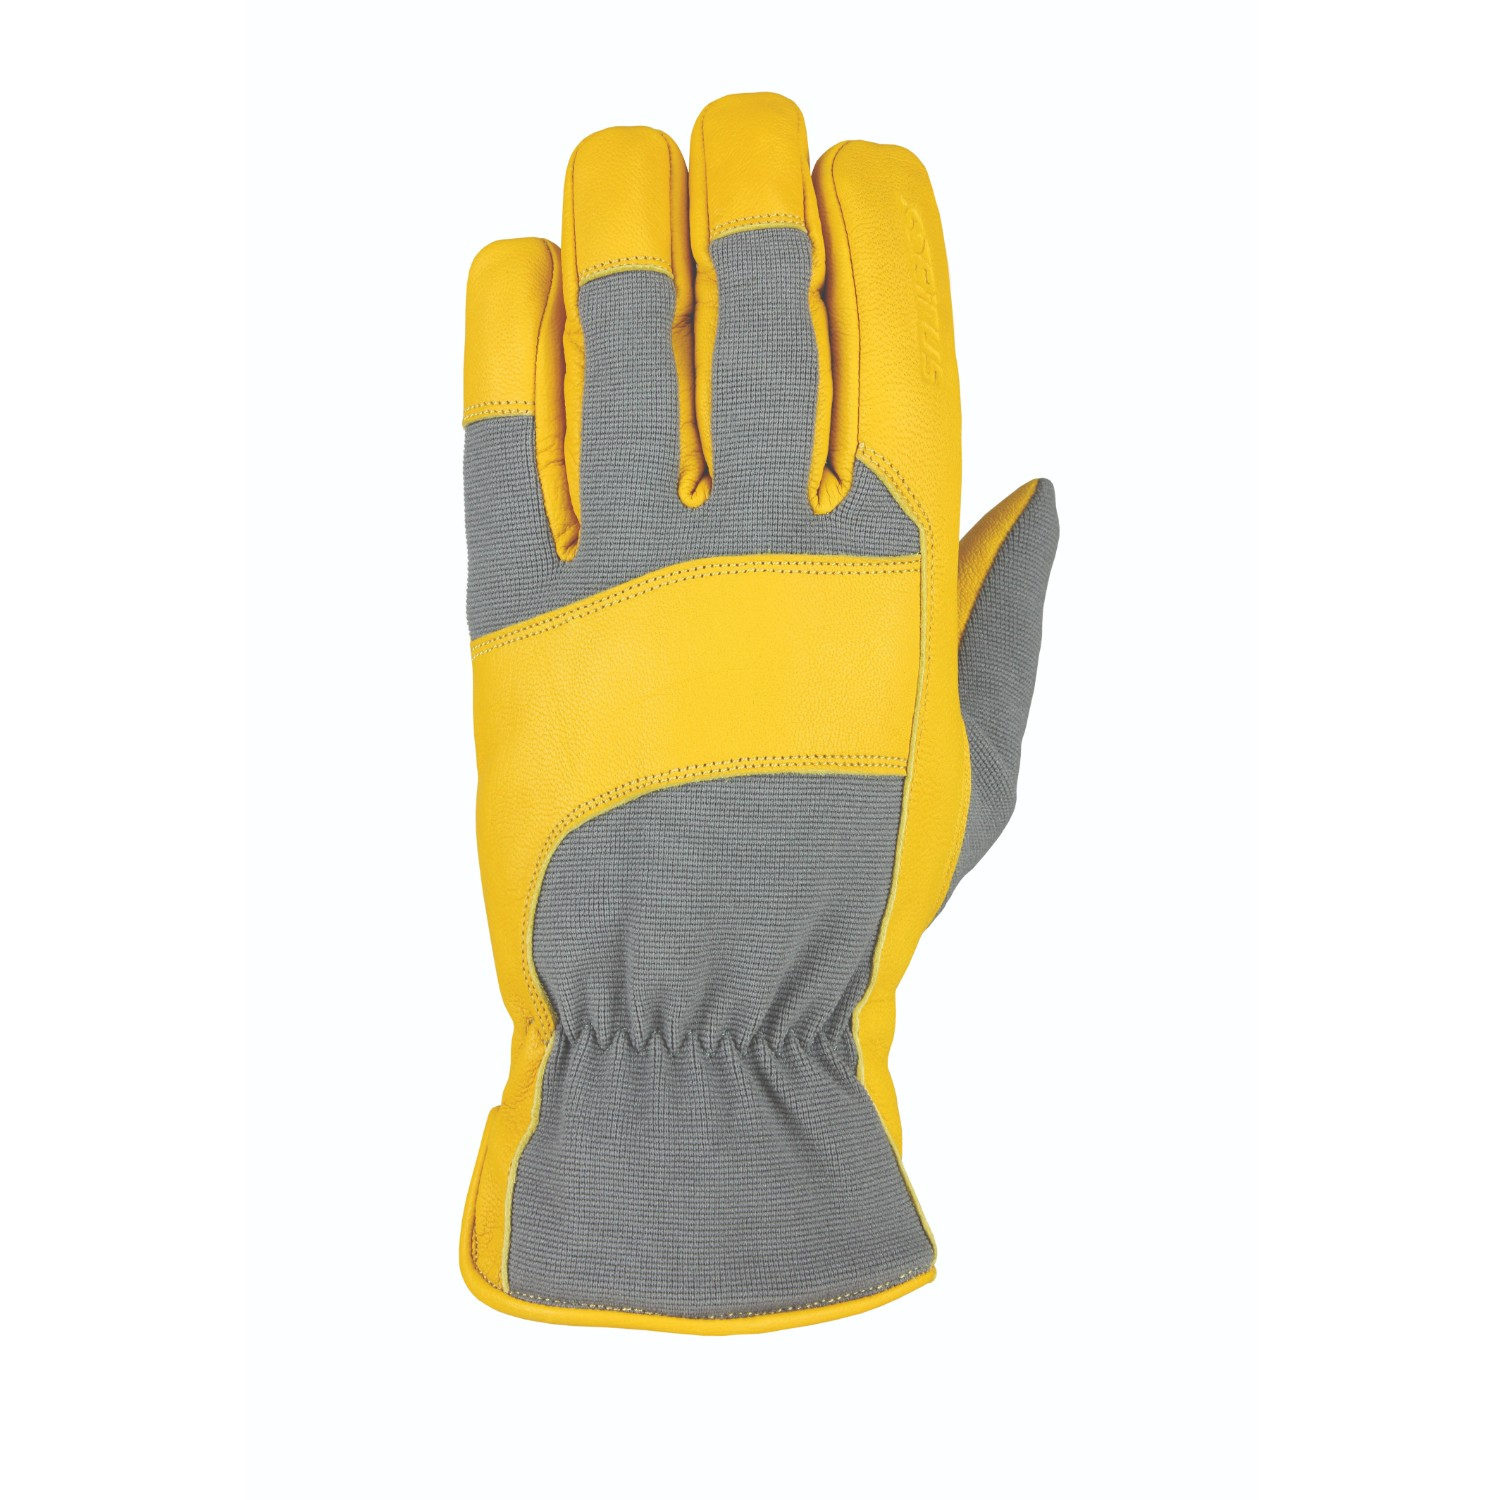 Heatwave Leather Glove Gray Tan Goatskin XXL